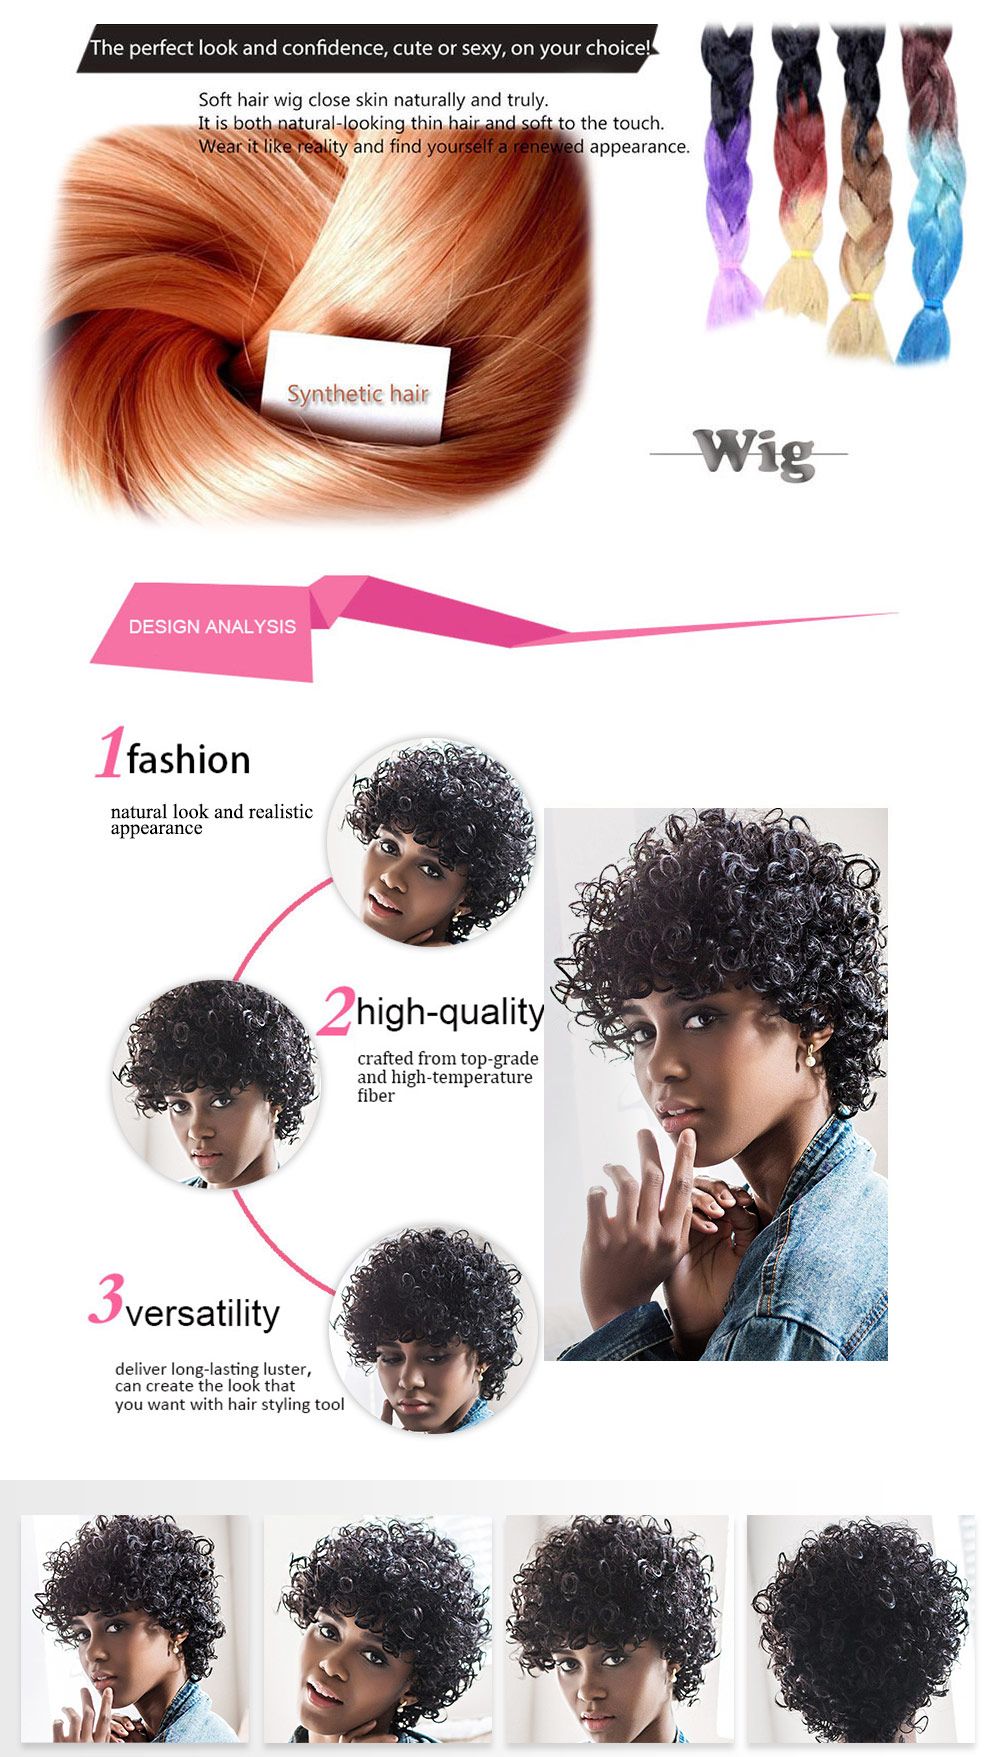 AISIHAIR Kinky Cute Short Natural Curly Black Wigs Afro Hairstyle for Women